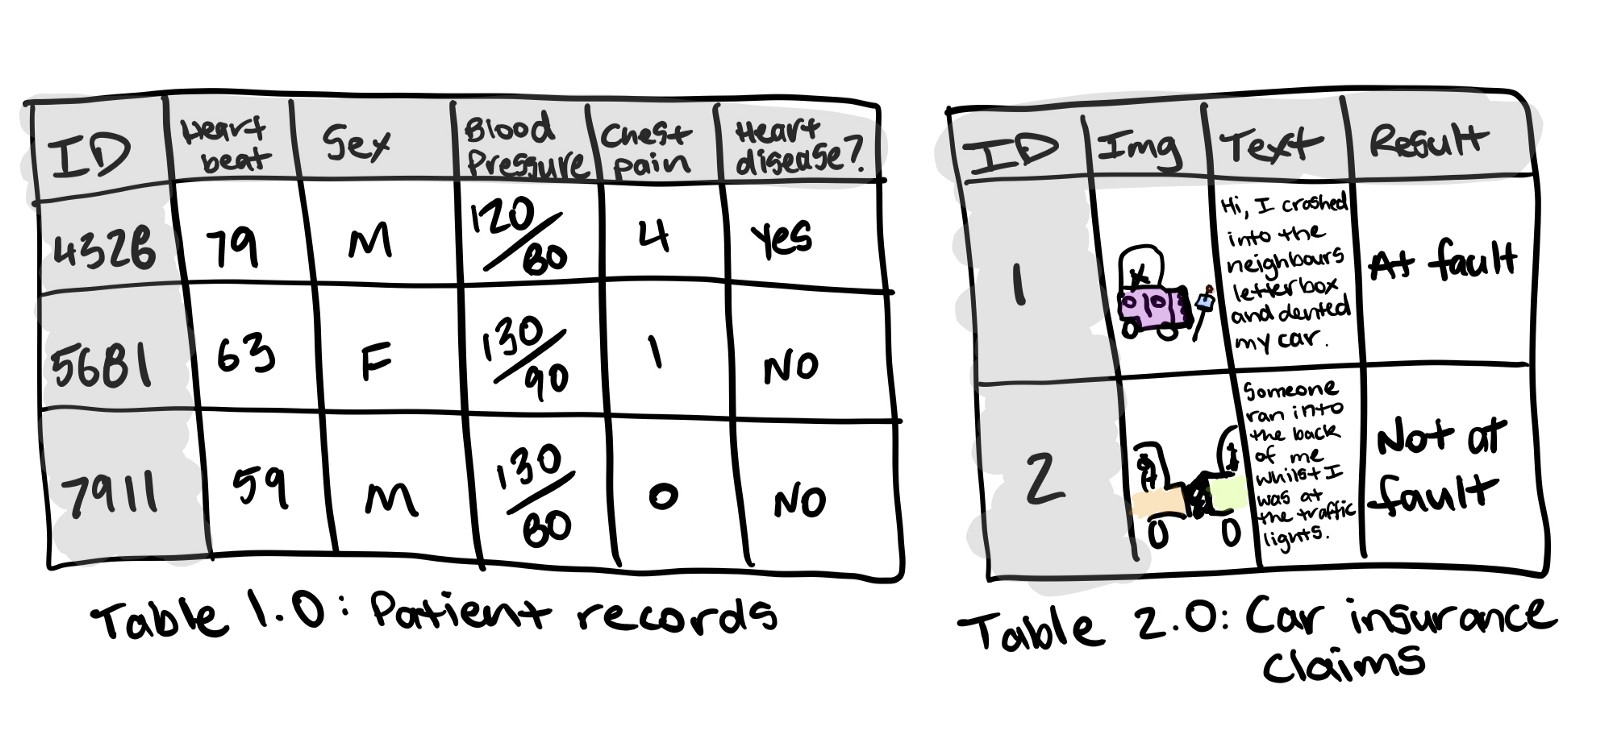 Two tables of structured data, one has patient records and whether or not they have heart disease, the other car insurance